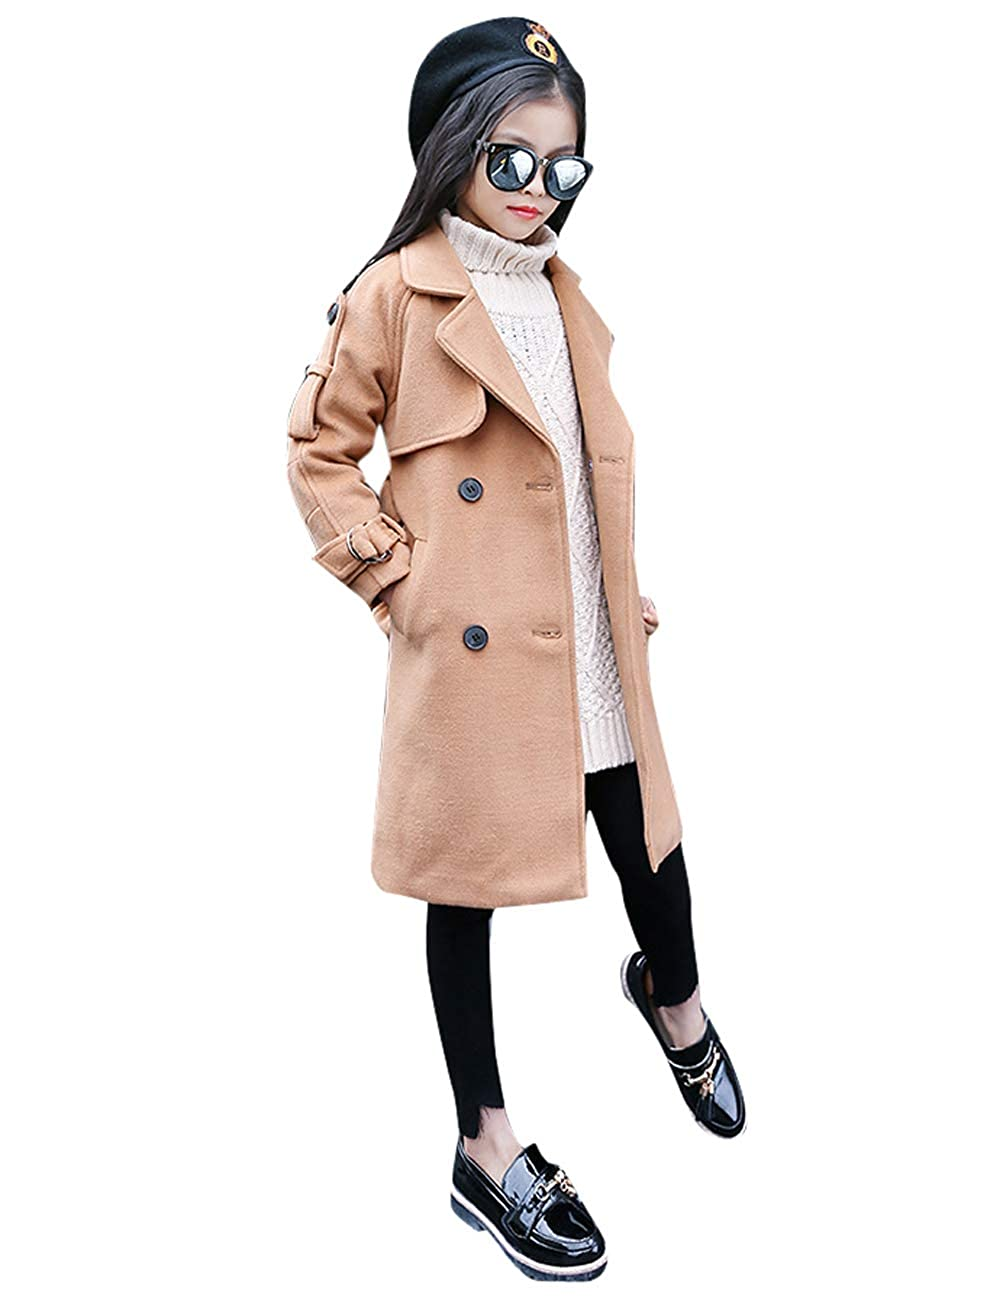 CUKKE Girls Woolen Coat Winter Dress-Coats Warm Jacket Overcoat Outerwear Wuxi Mokaya Trading Co. Ltd. CK-HZMC-1819